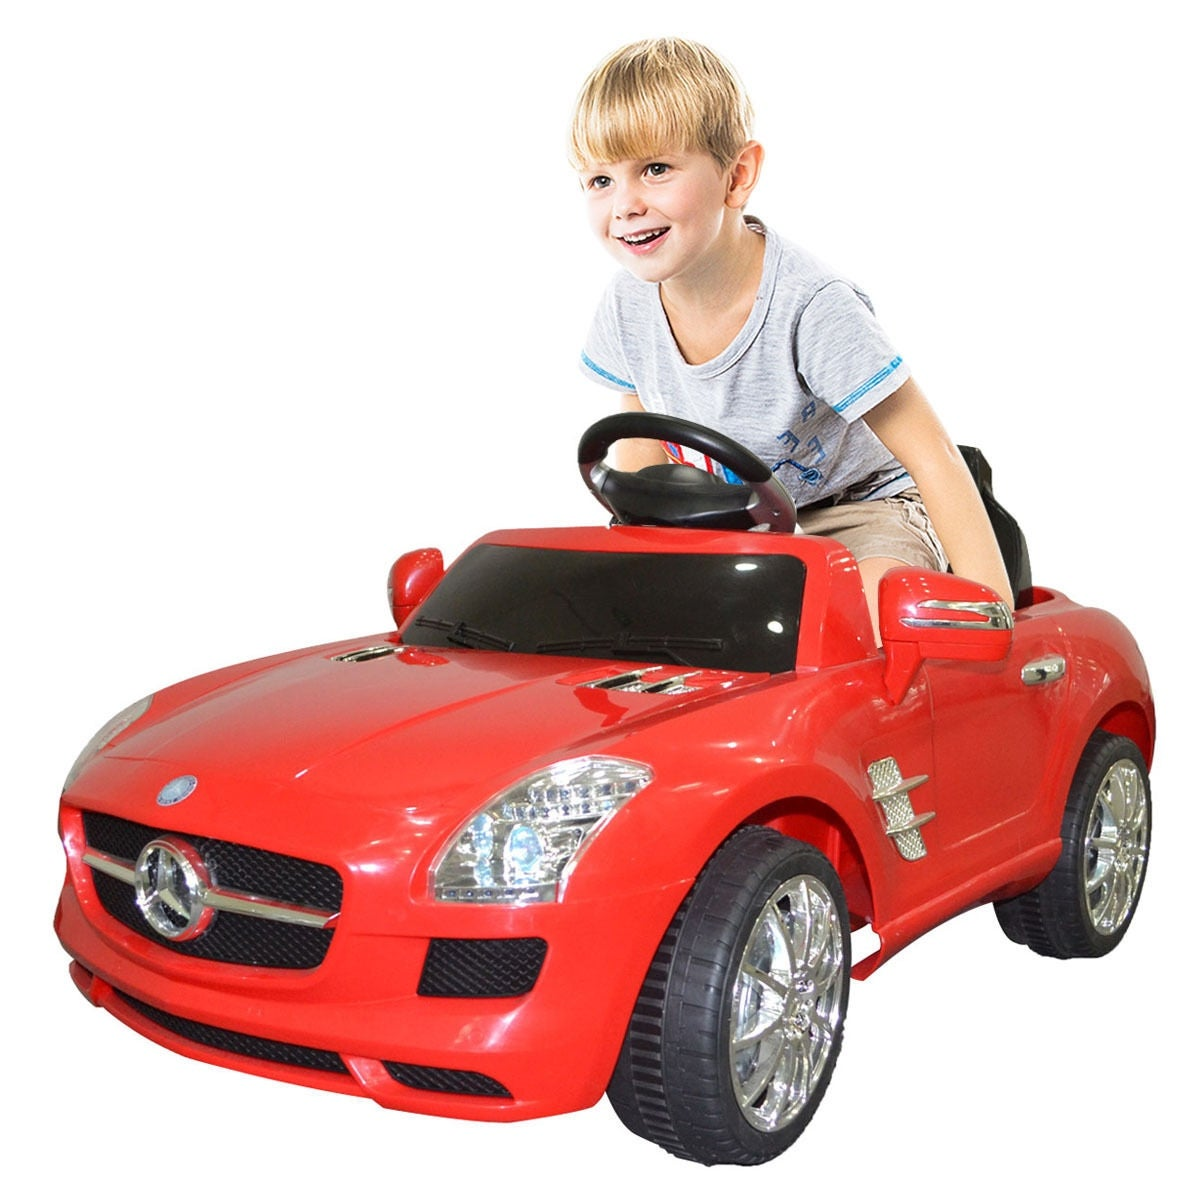 61830596443ee8 Buy Powered Riding Toys Online at Overstock